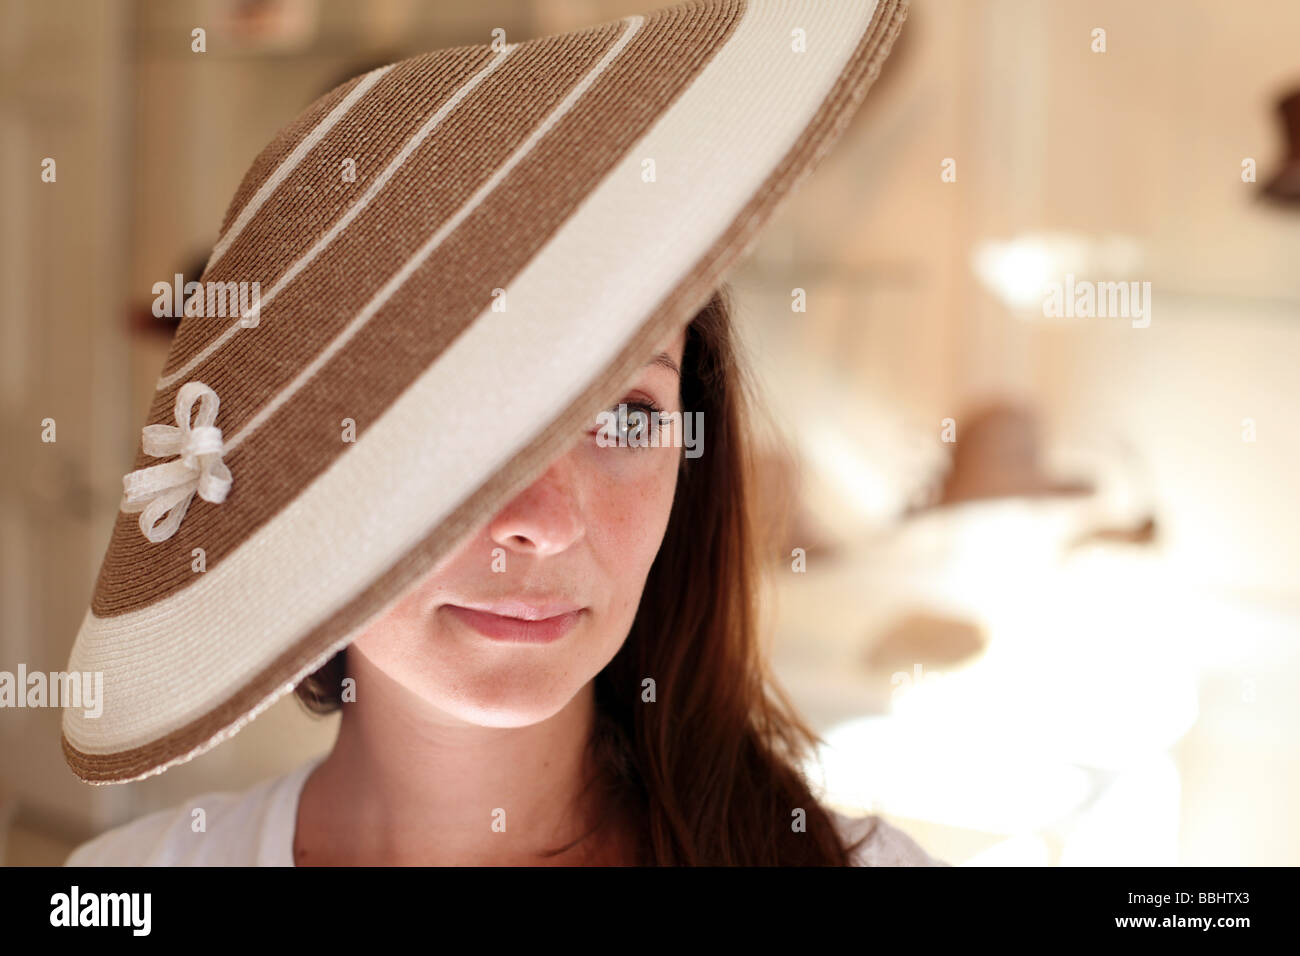 Brim of a hat stock photos brim of a hat stock images for The woman in number 6